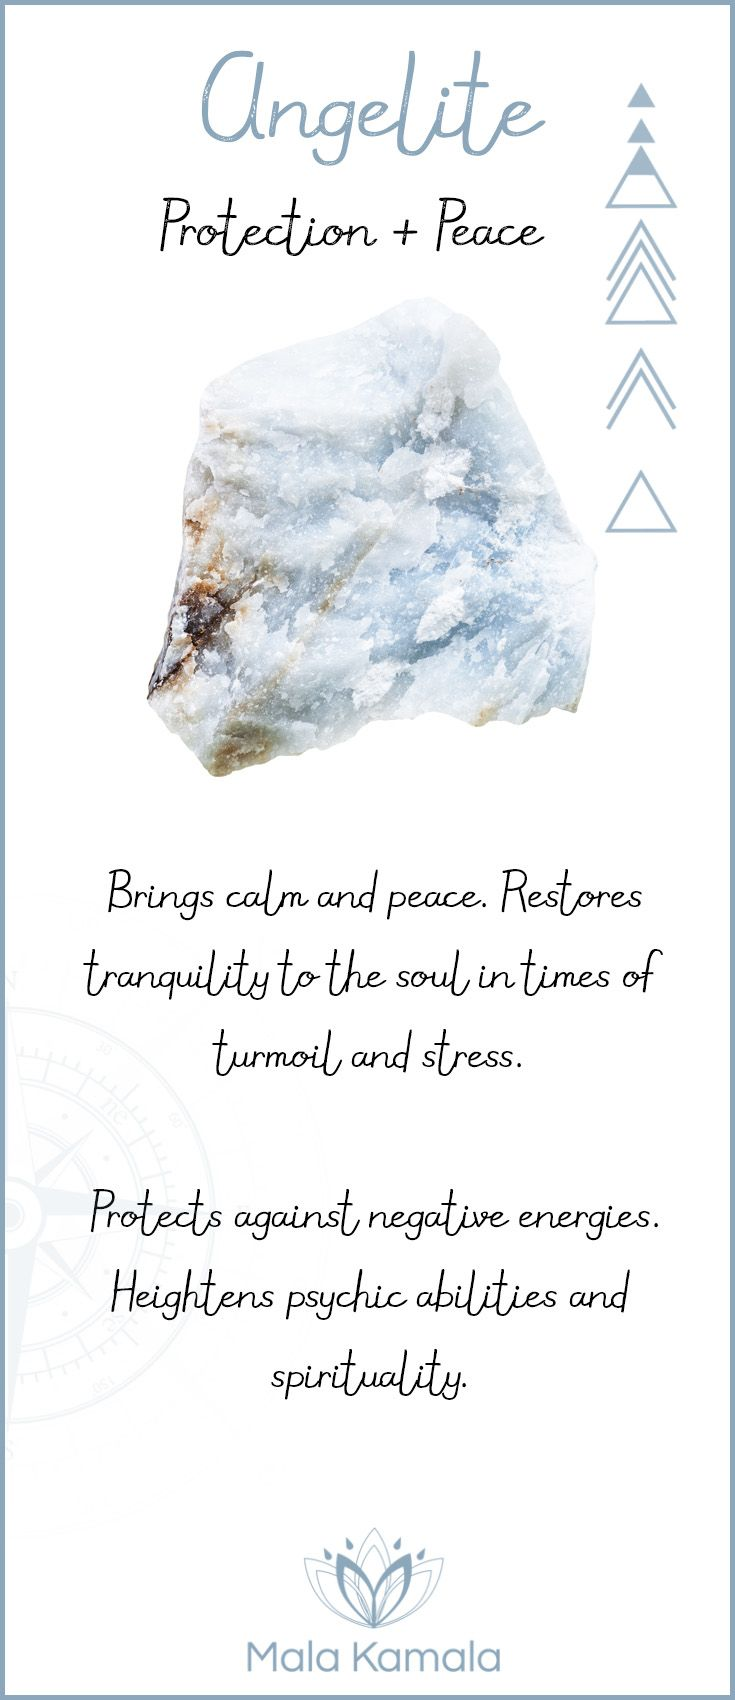 What is the meaning and crystal and chakra healing properties of angelite? A stone for protection and peace.